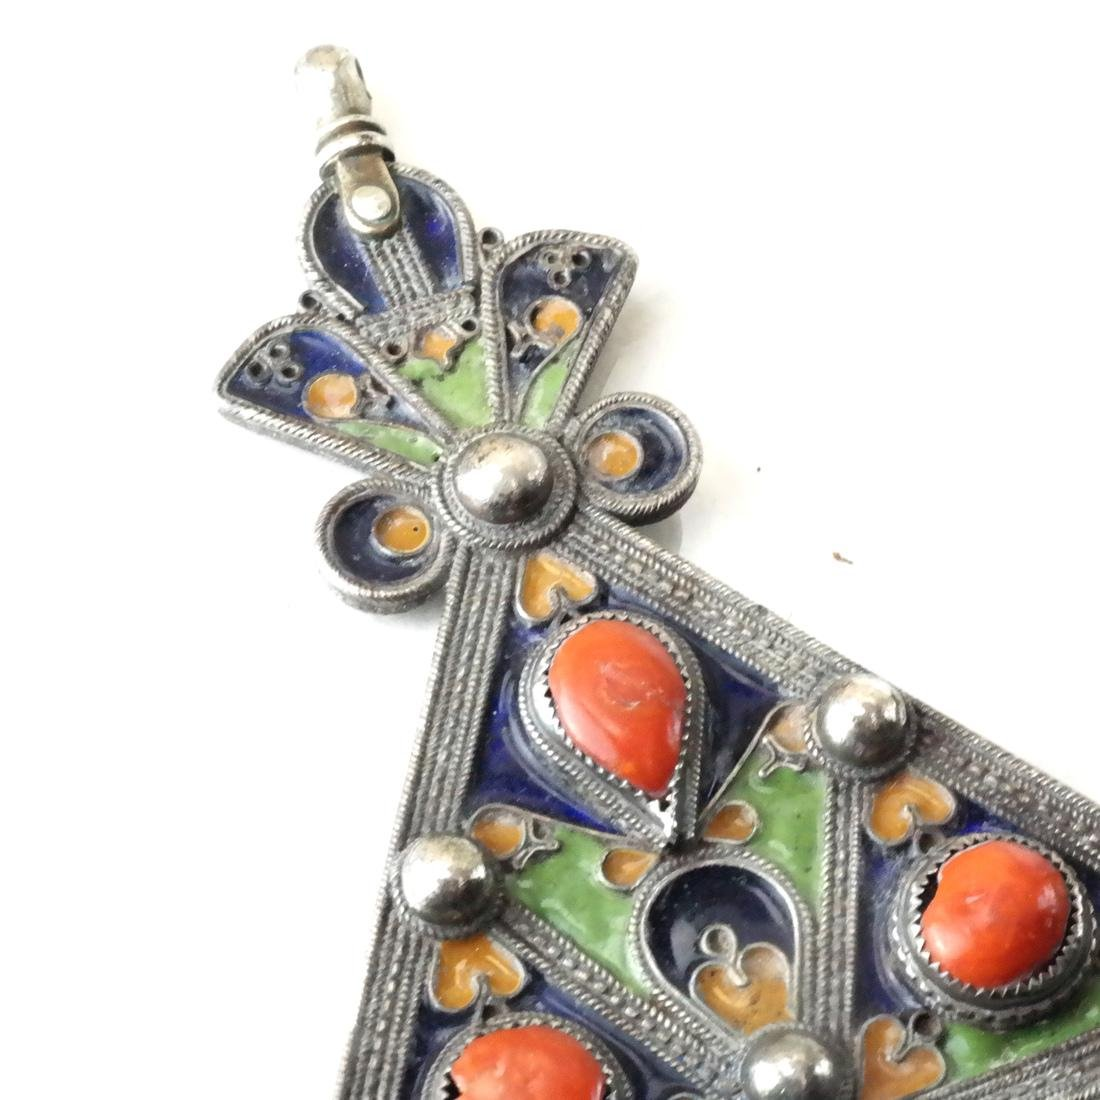 Antique Silver & Enamel Afghan/Central Asian Drops - 3